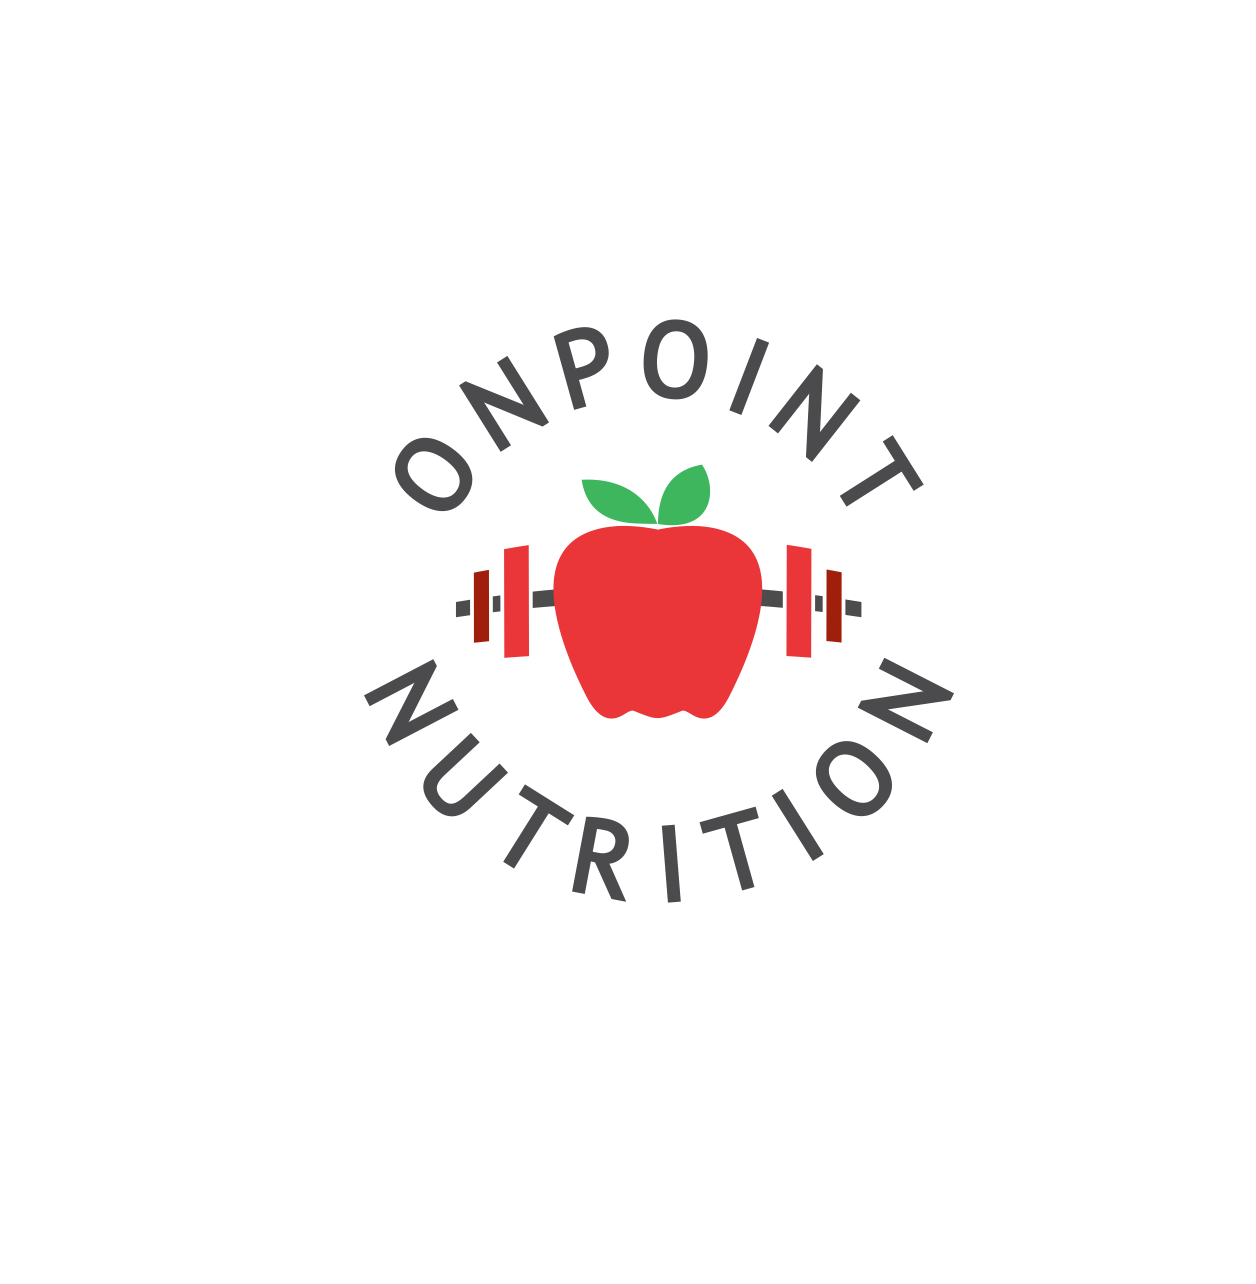 Nutritional/fitness consultant needs organic, creative/fun & inspiring logo